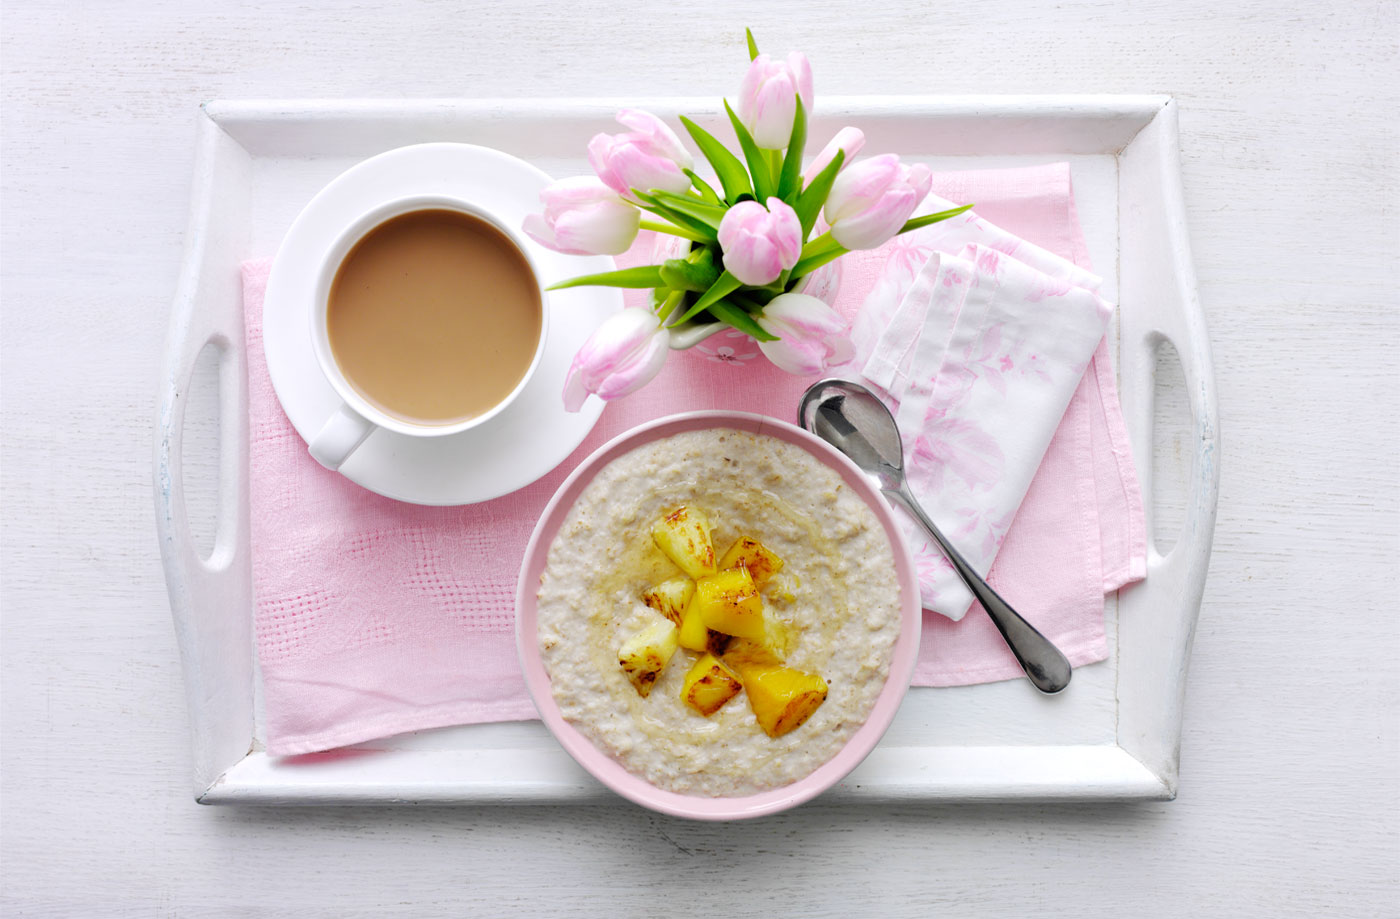 Slow-cooked coconut porridge with warm tropical fruit